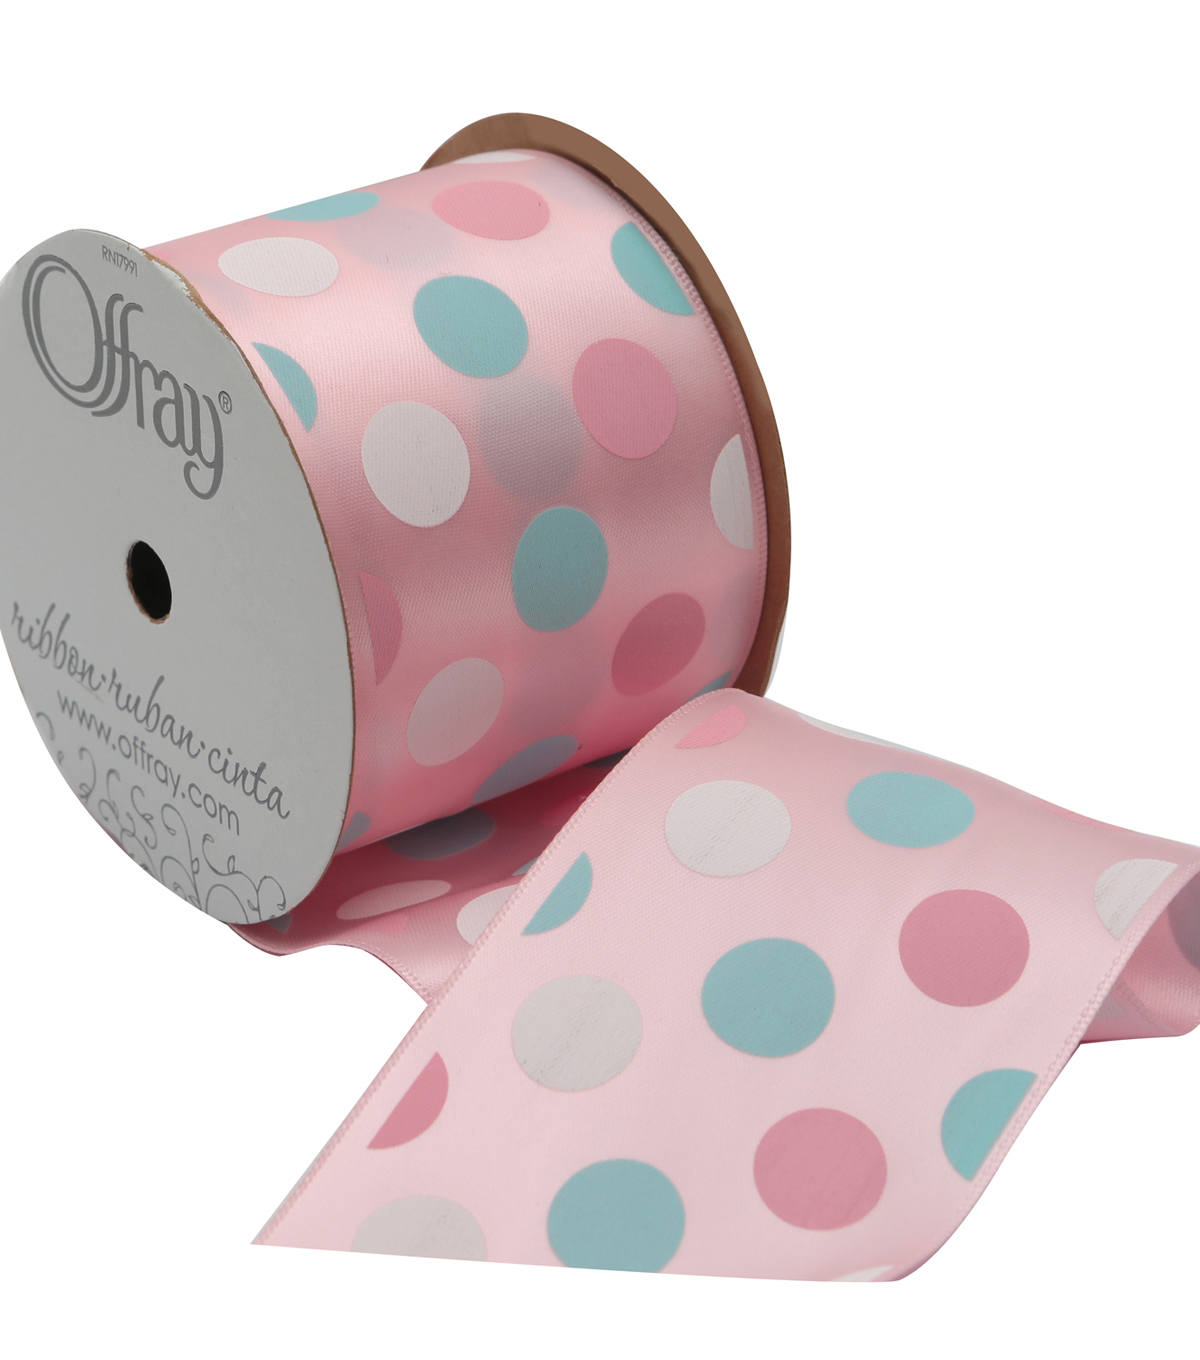 2 And One Qtr Pastel Mystique Dot 2 Ribbon